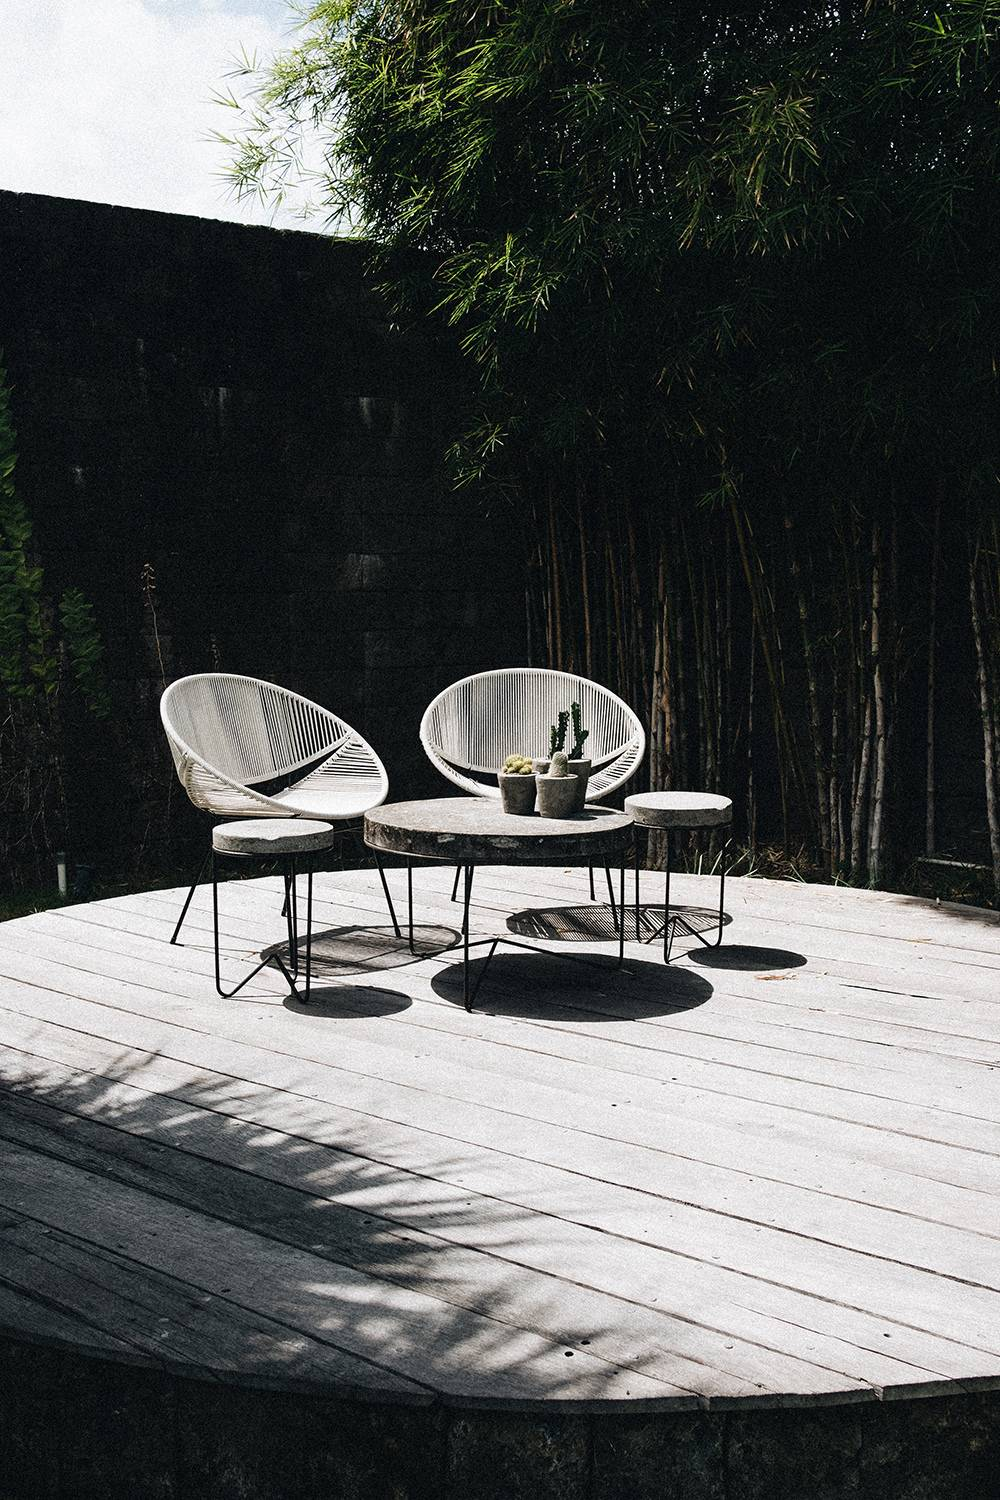 Fall chores: Store outdoor furniture